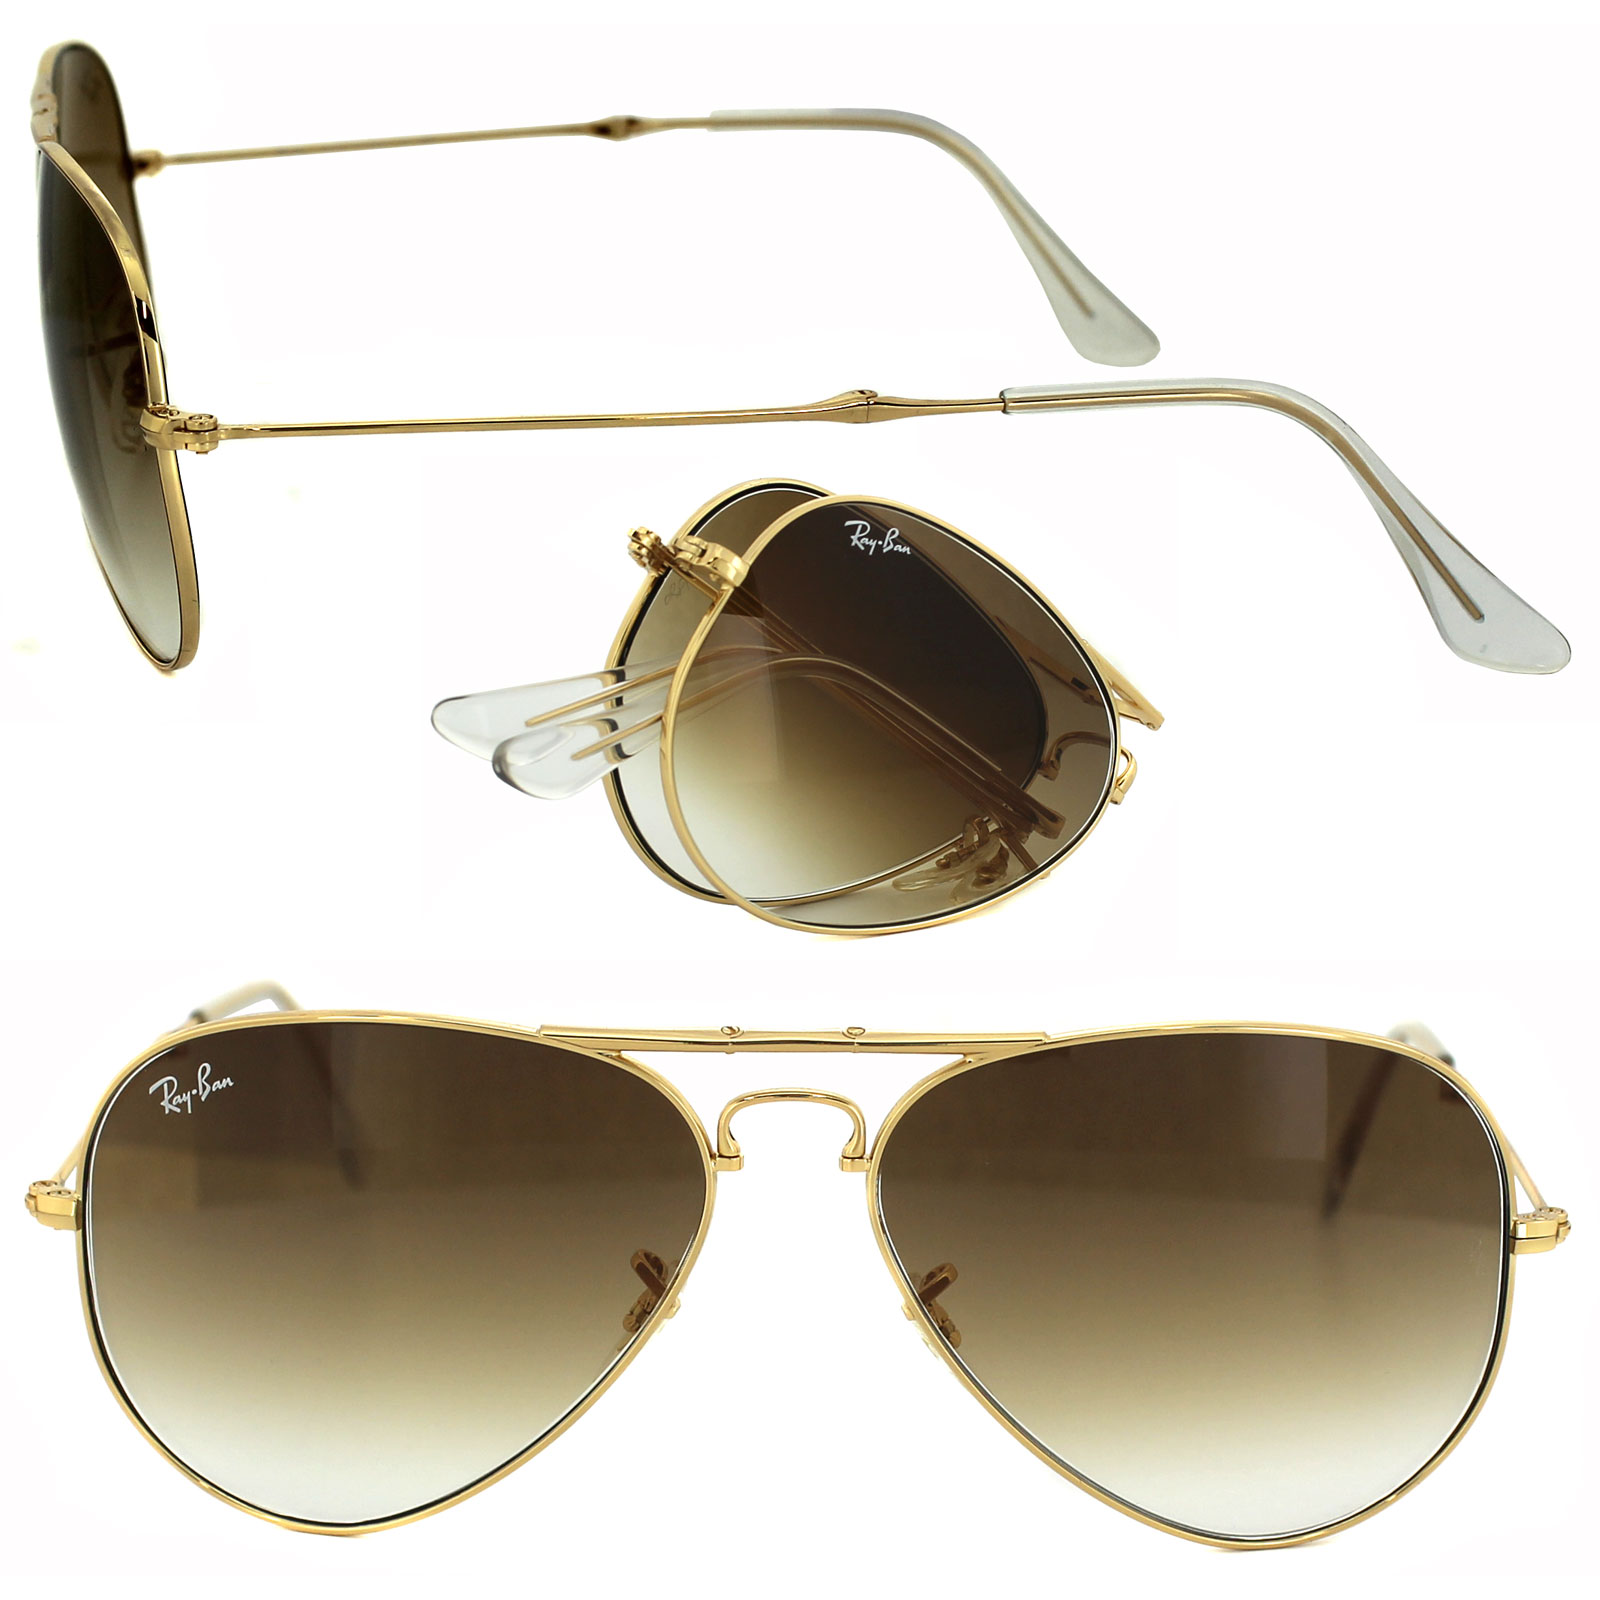 Ray-Ban RB3479 001 58 mm/14 mm bCUUBl